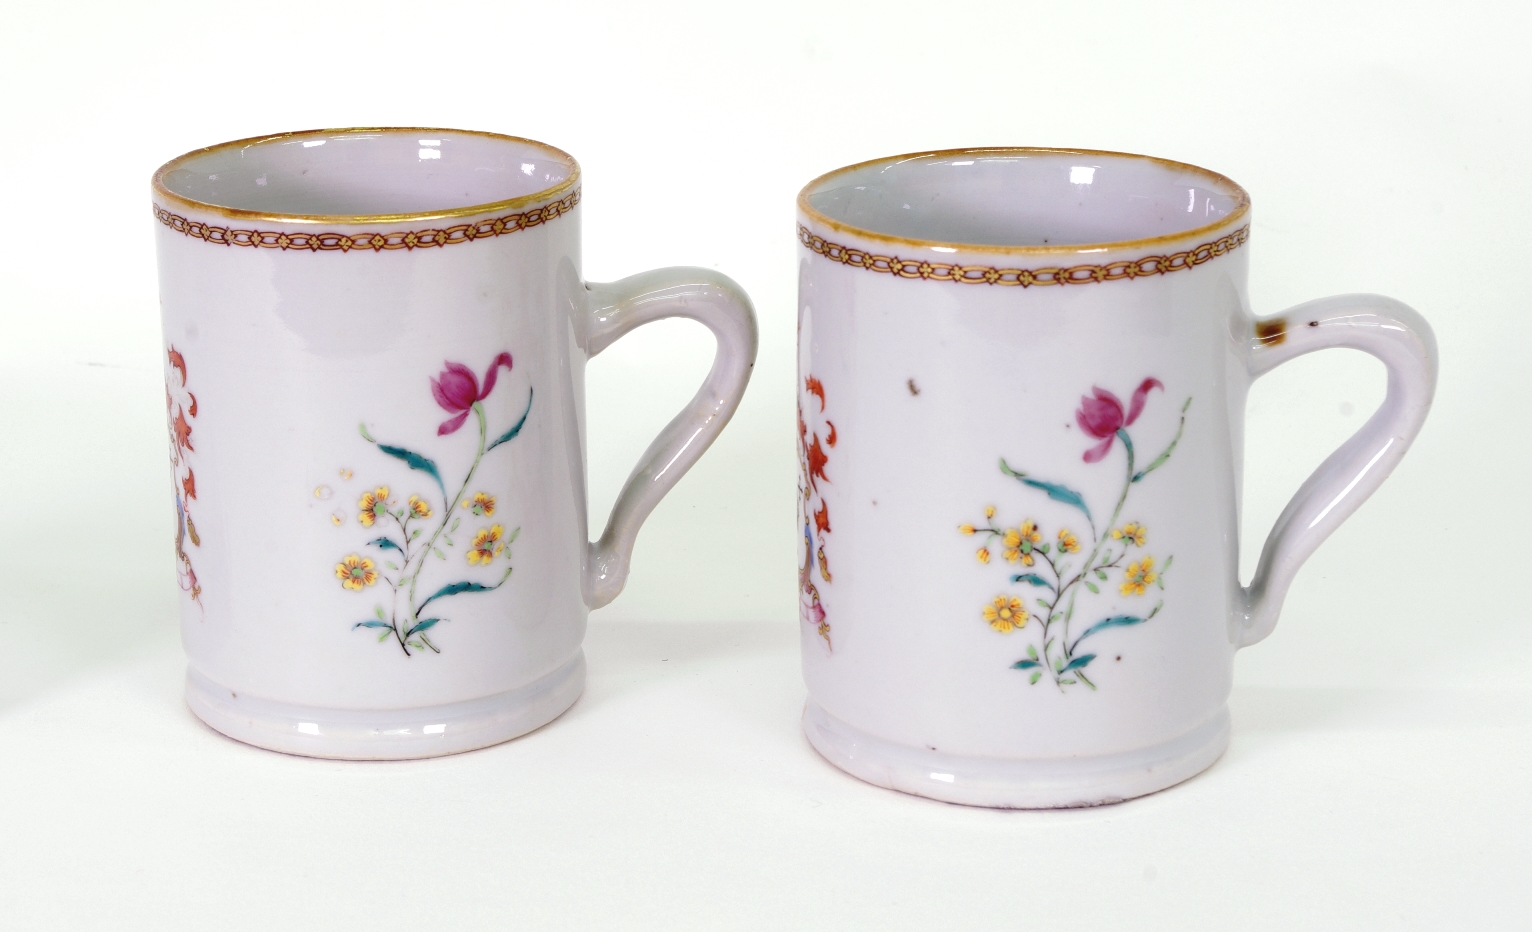 View 2: Pair of Chinese Export Armorial Small Mugs, c. 1750